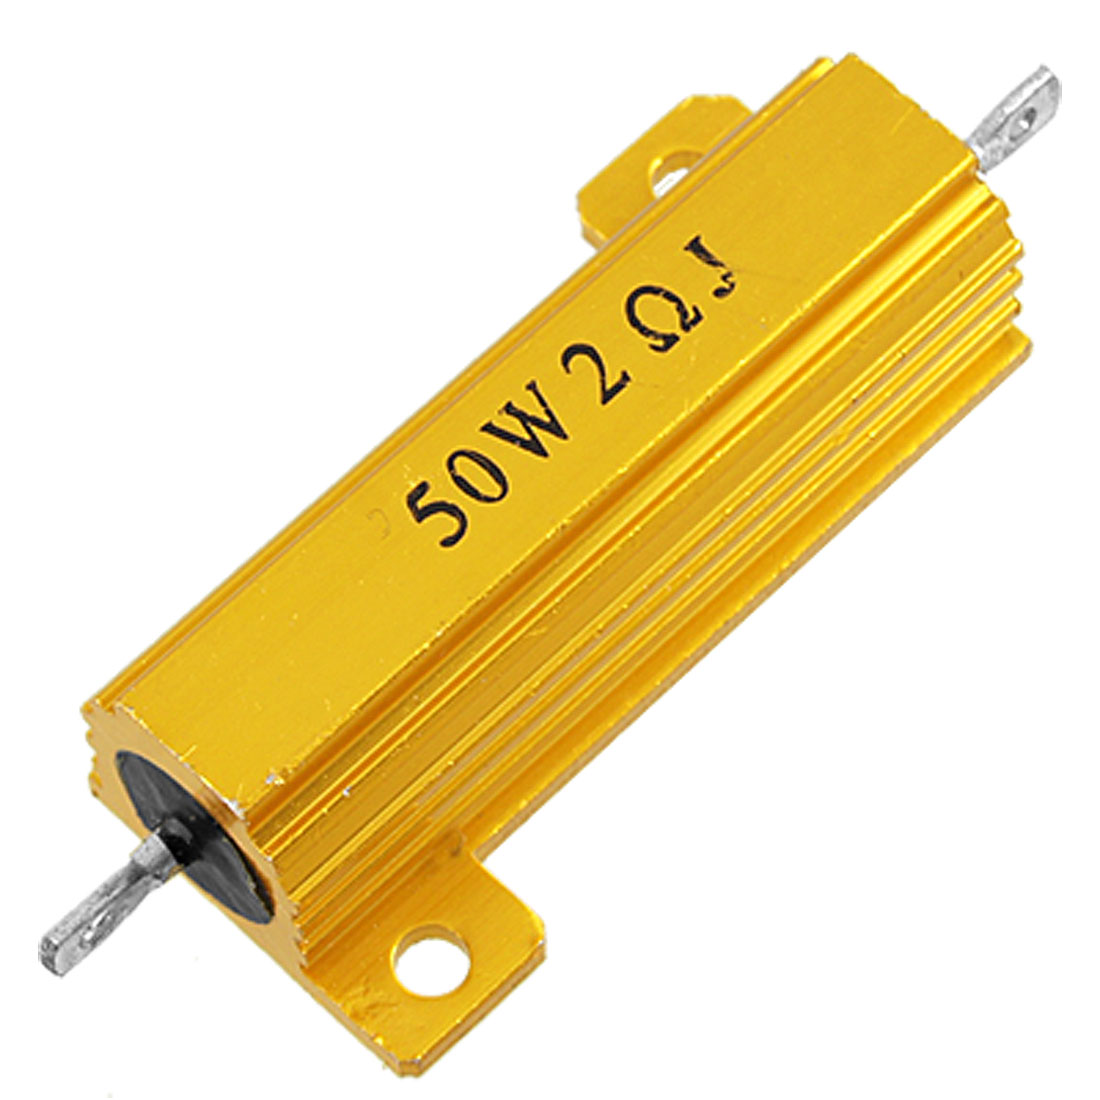 Gold Tone Chassis Mount Wirewound Aluminium Housed Resistor 5% 50W 2 Ohm